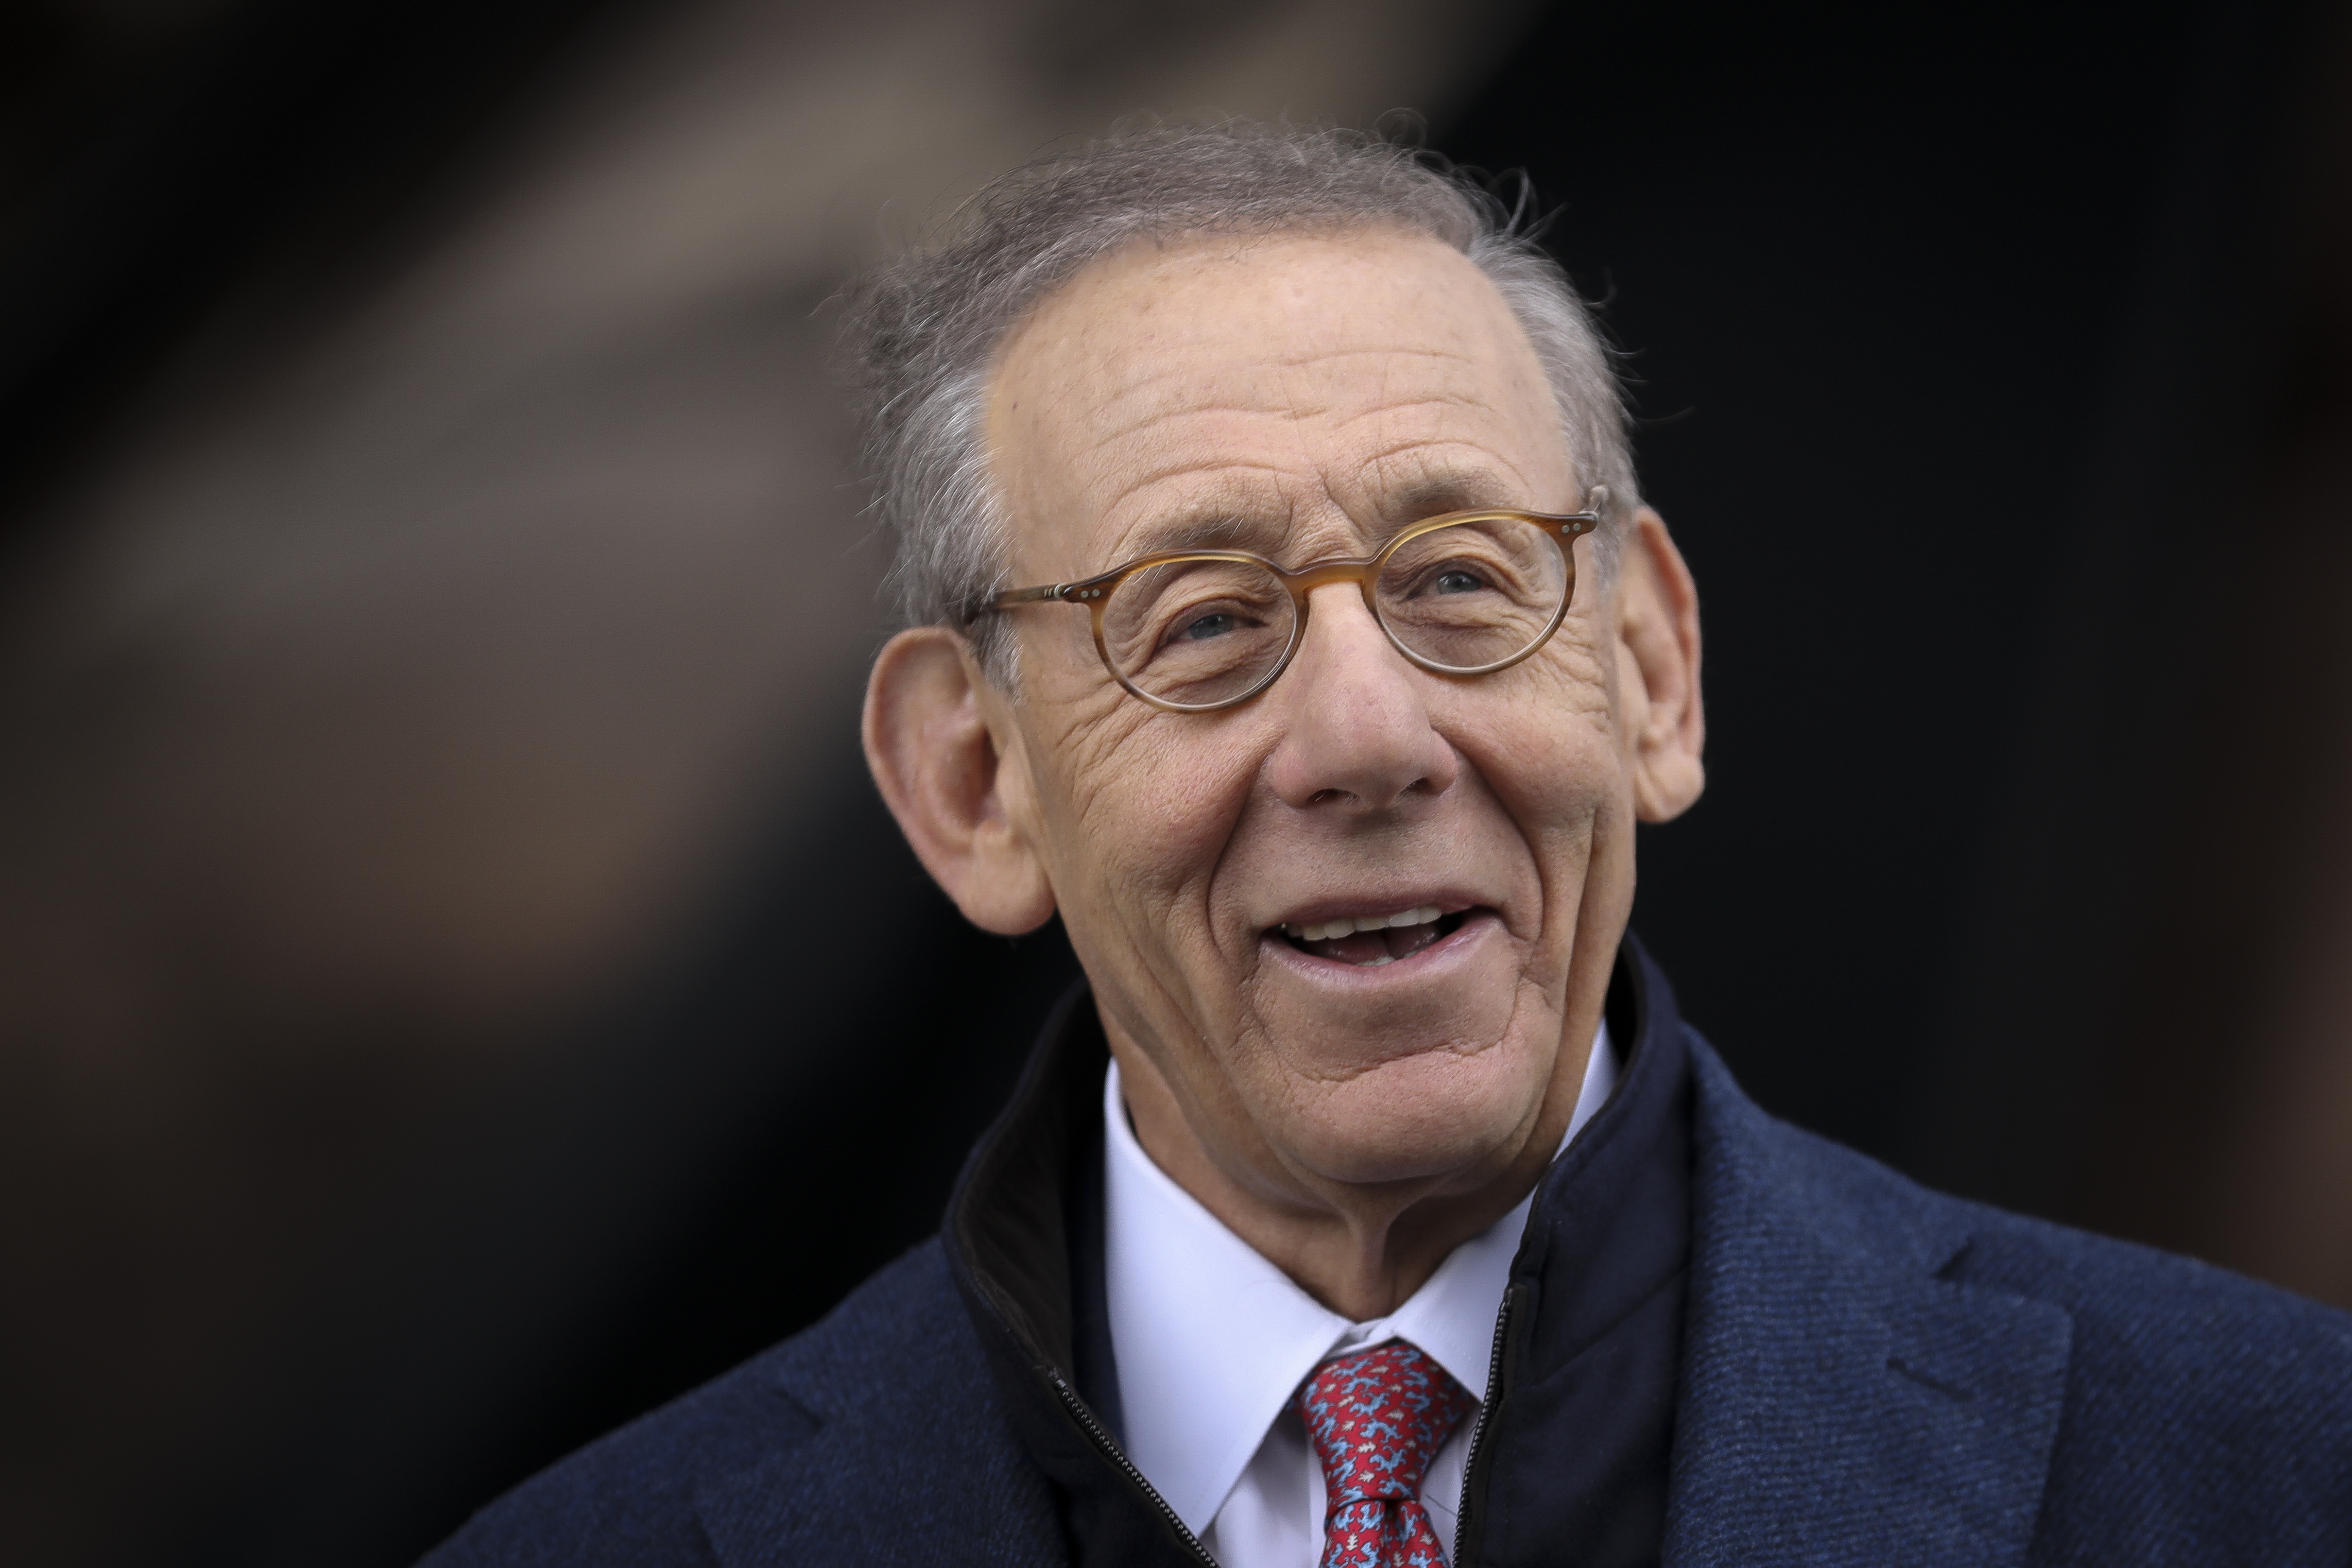 Stephen Ross against a blurred background